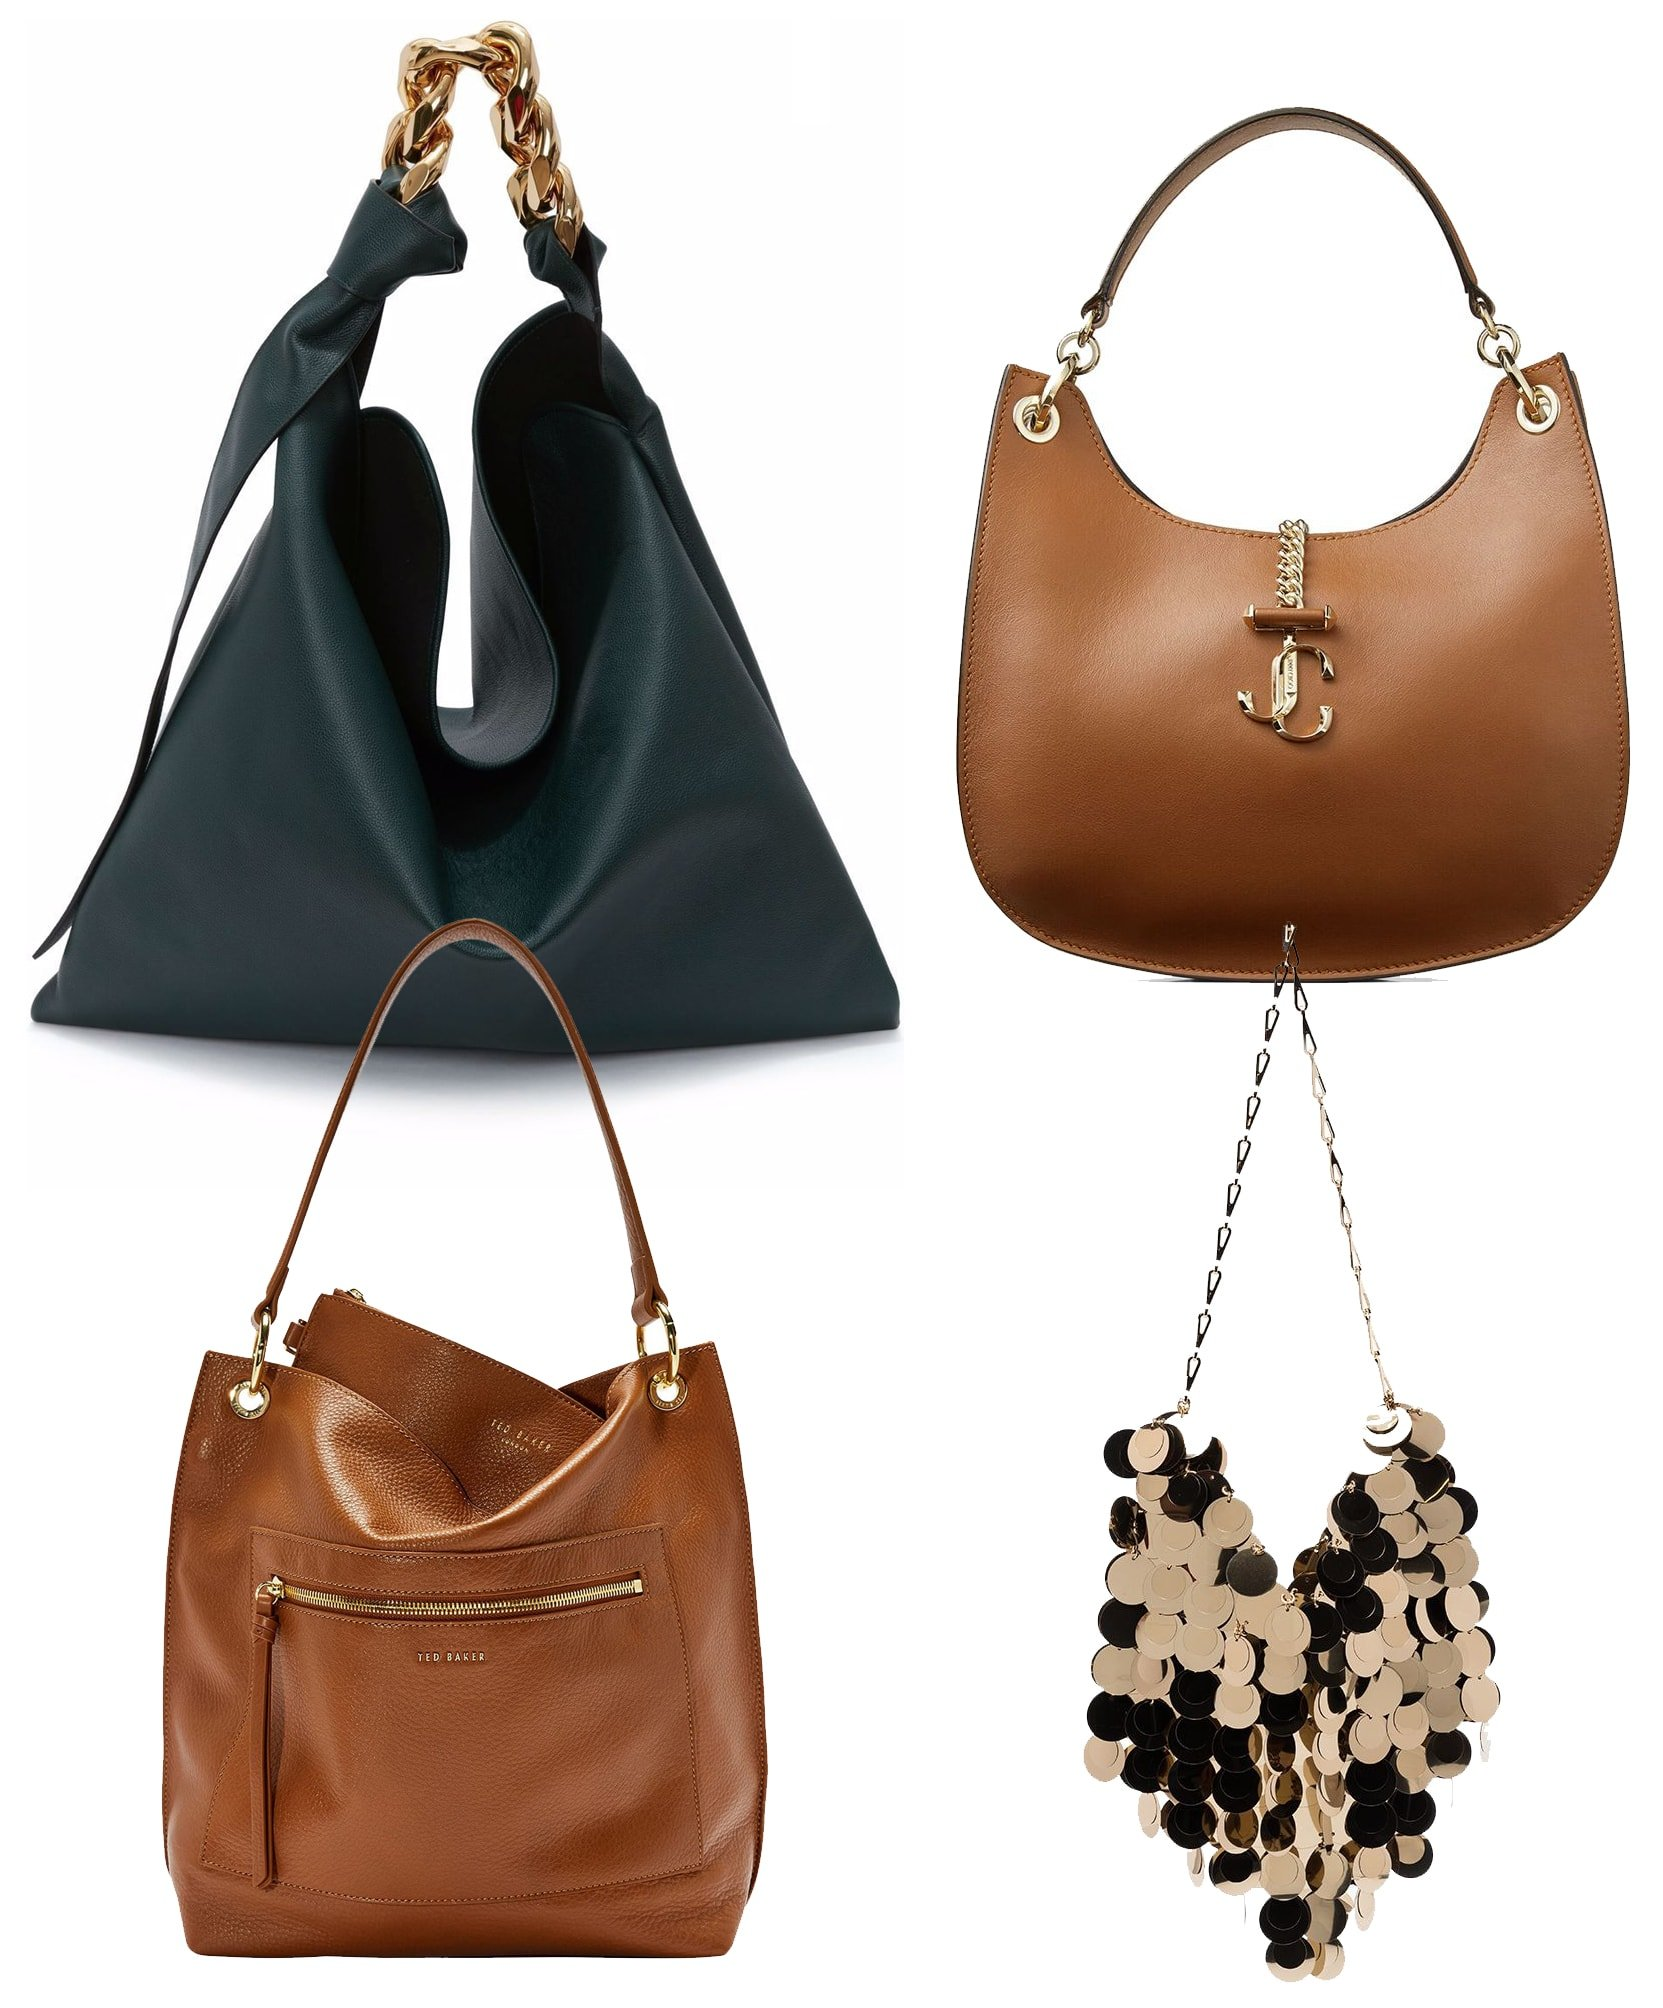 Hobo bags are still in style, with several brands putting their own twist on the classic hobo bag